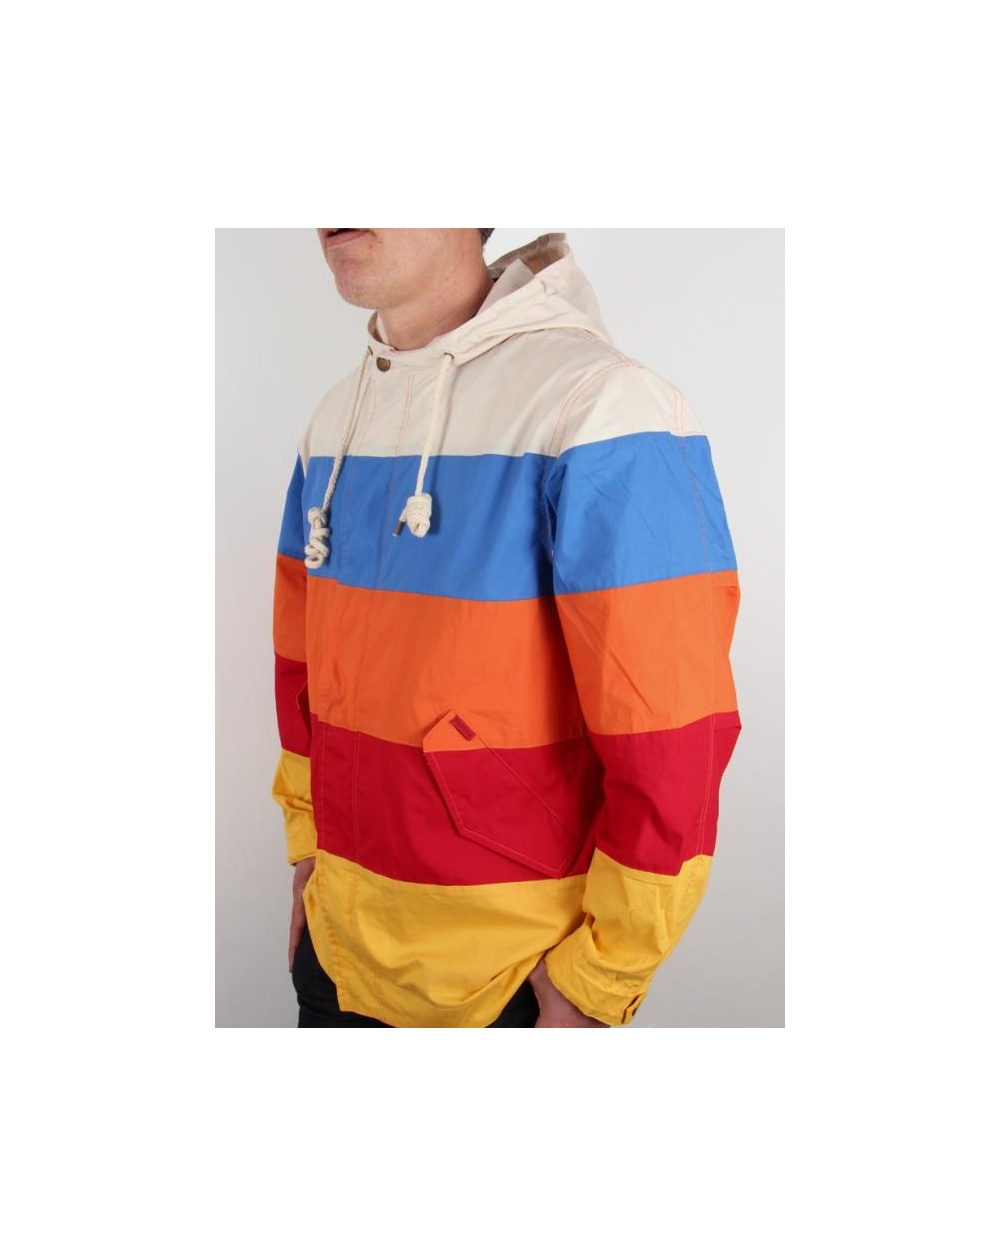 80s casuals yachting jacket